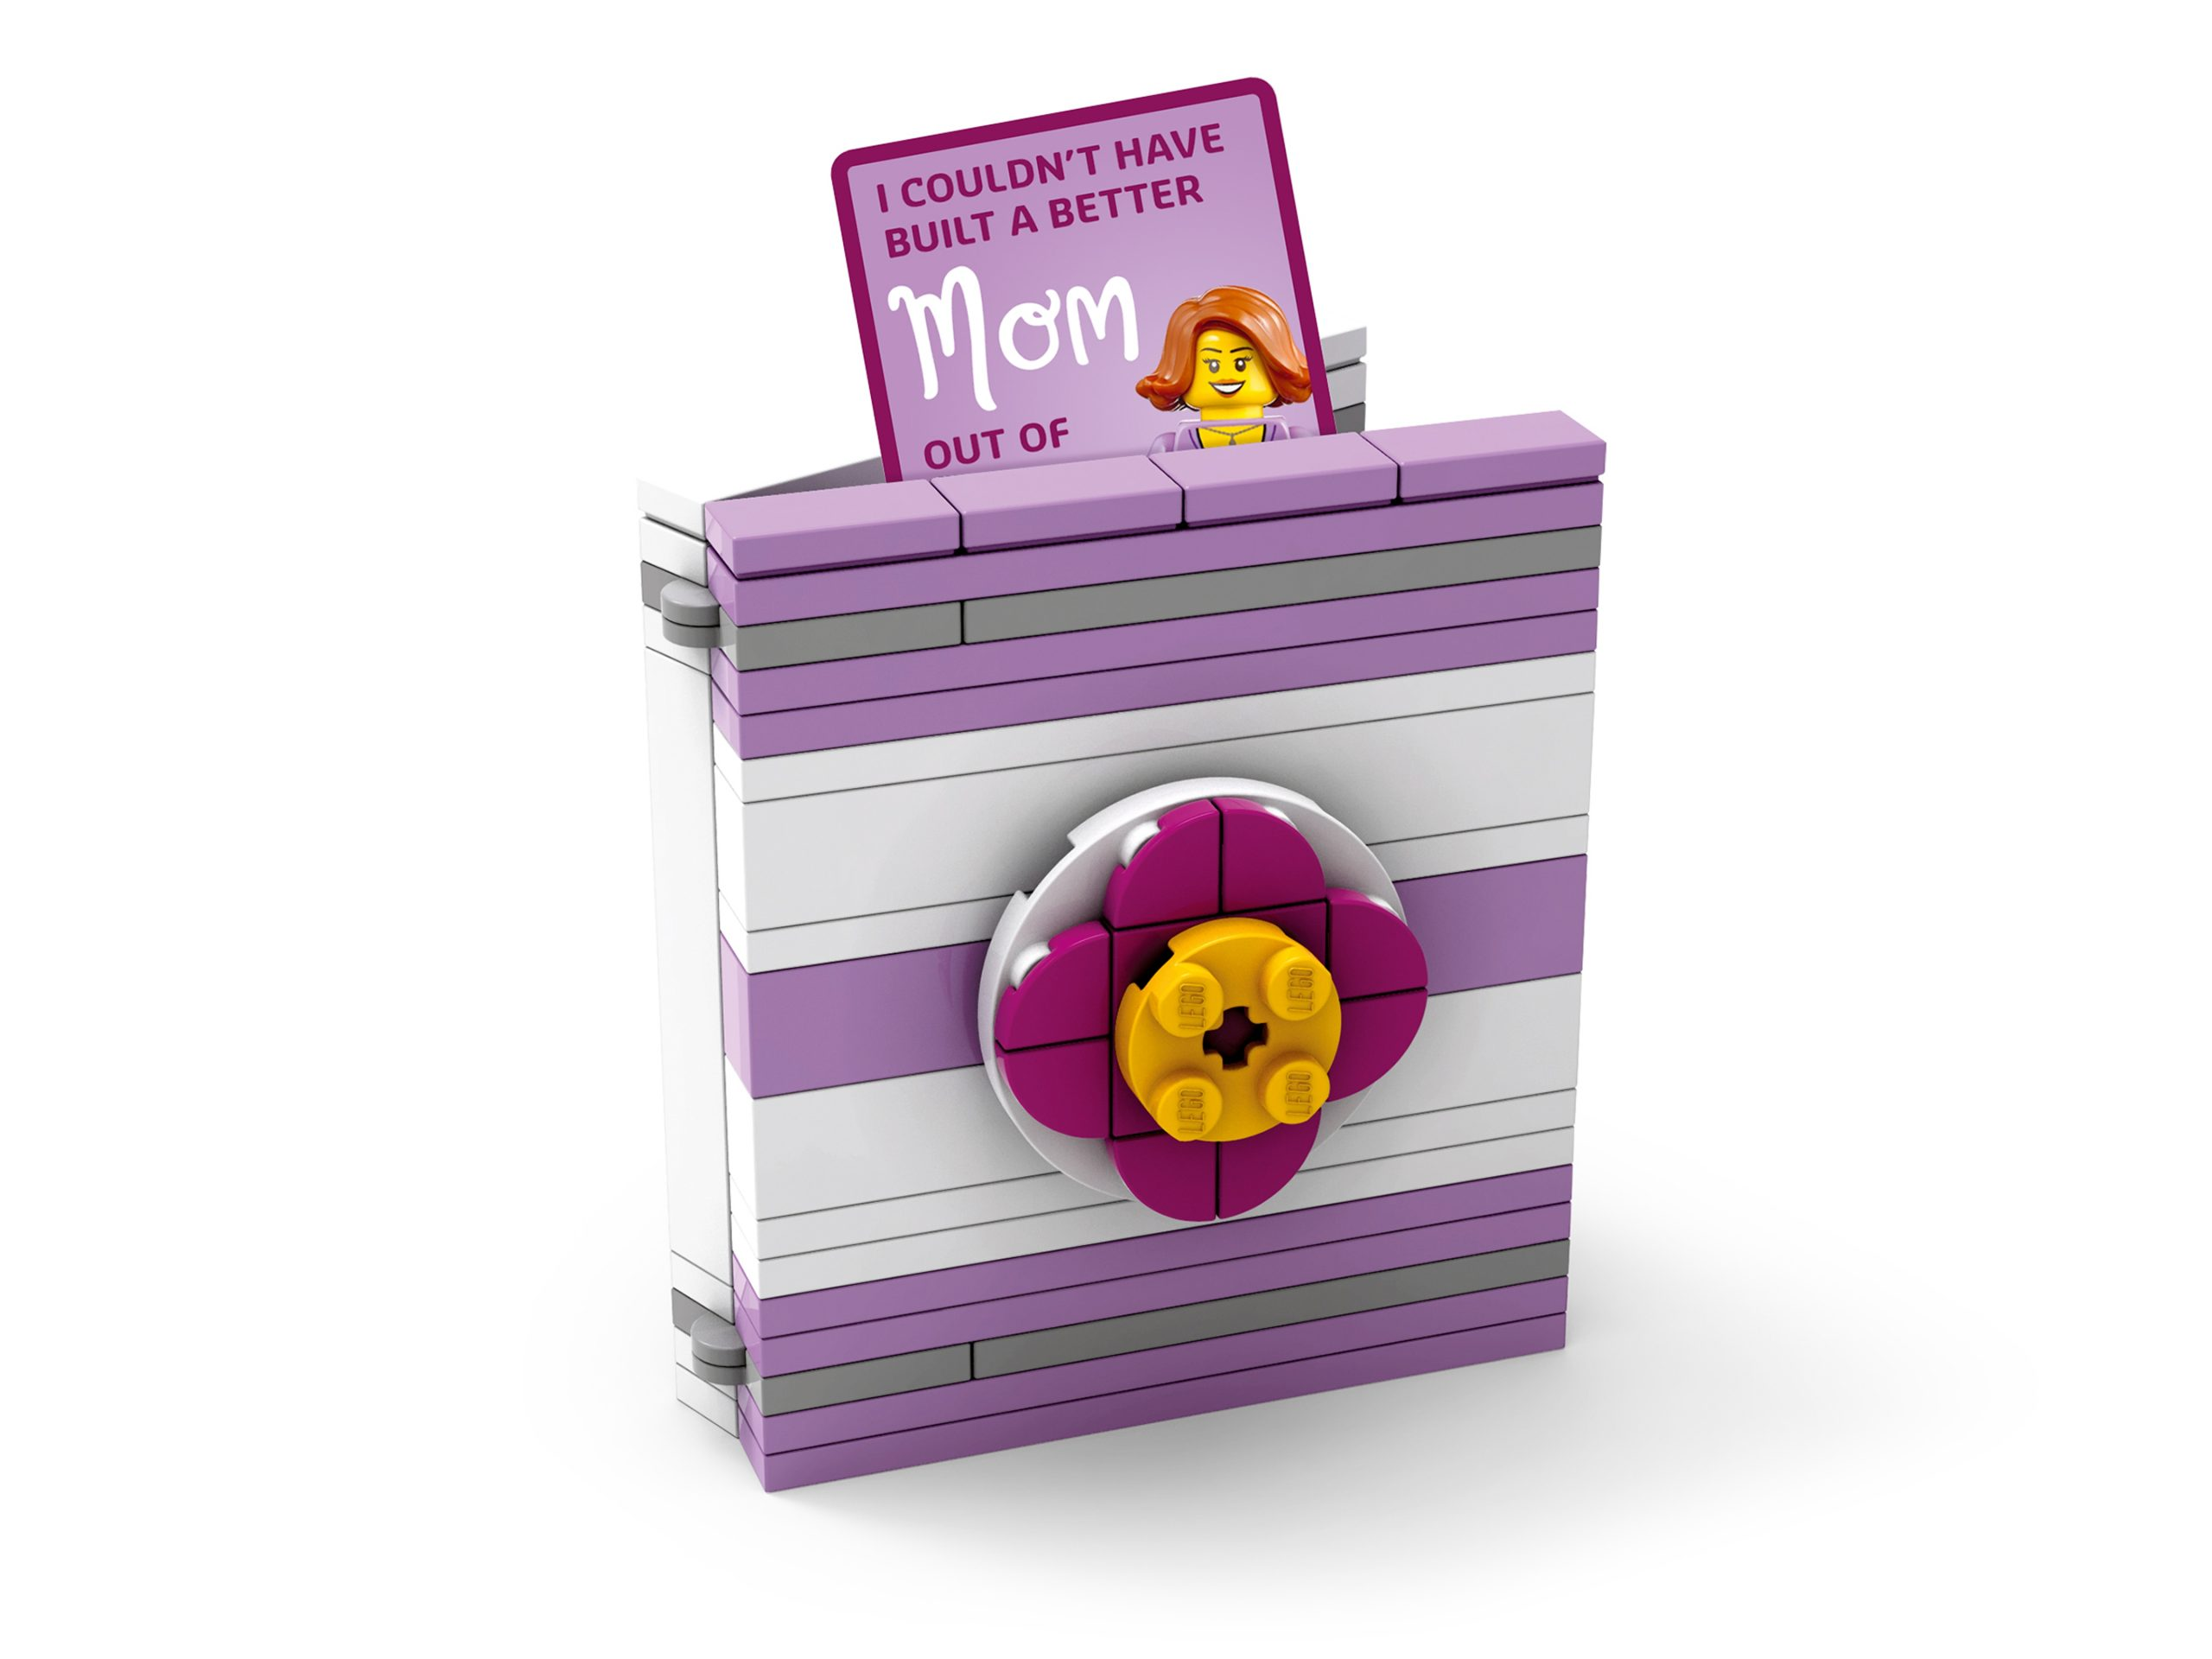 lego 5005878 buildable mothers day card scaled